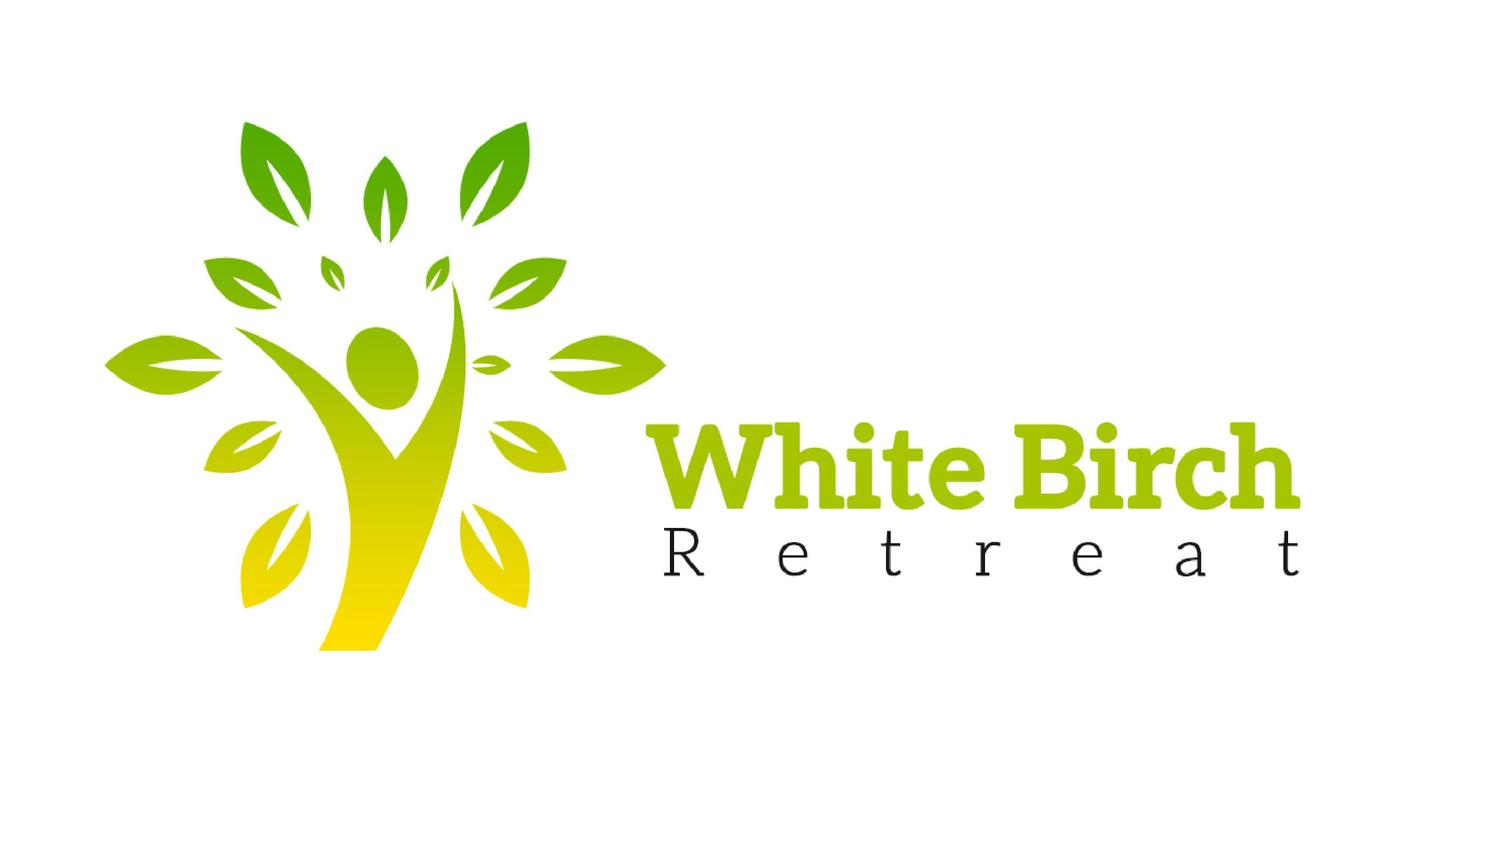 White Birch Retreat